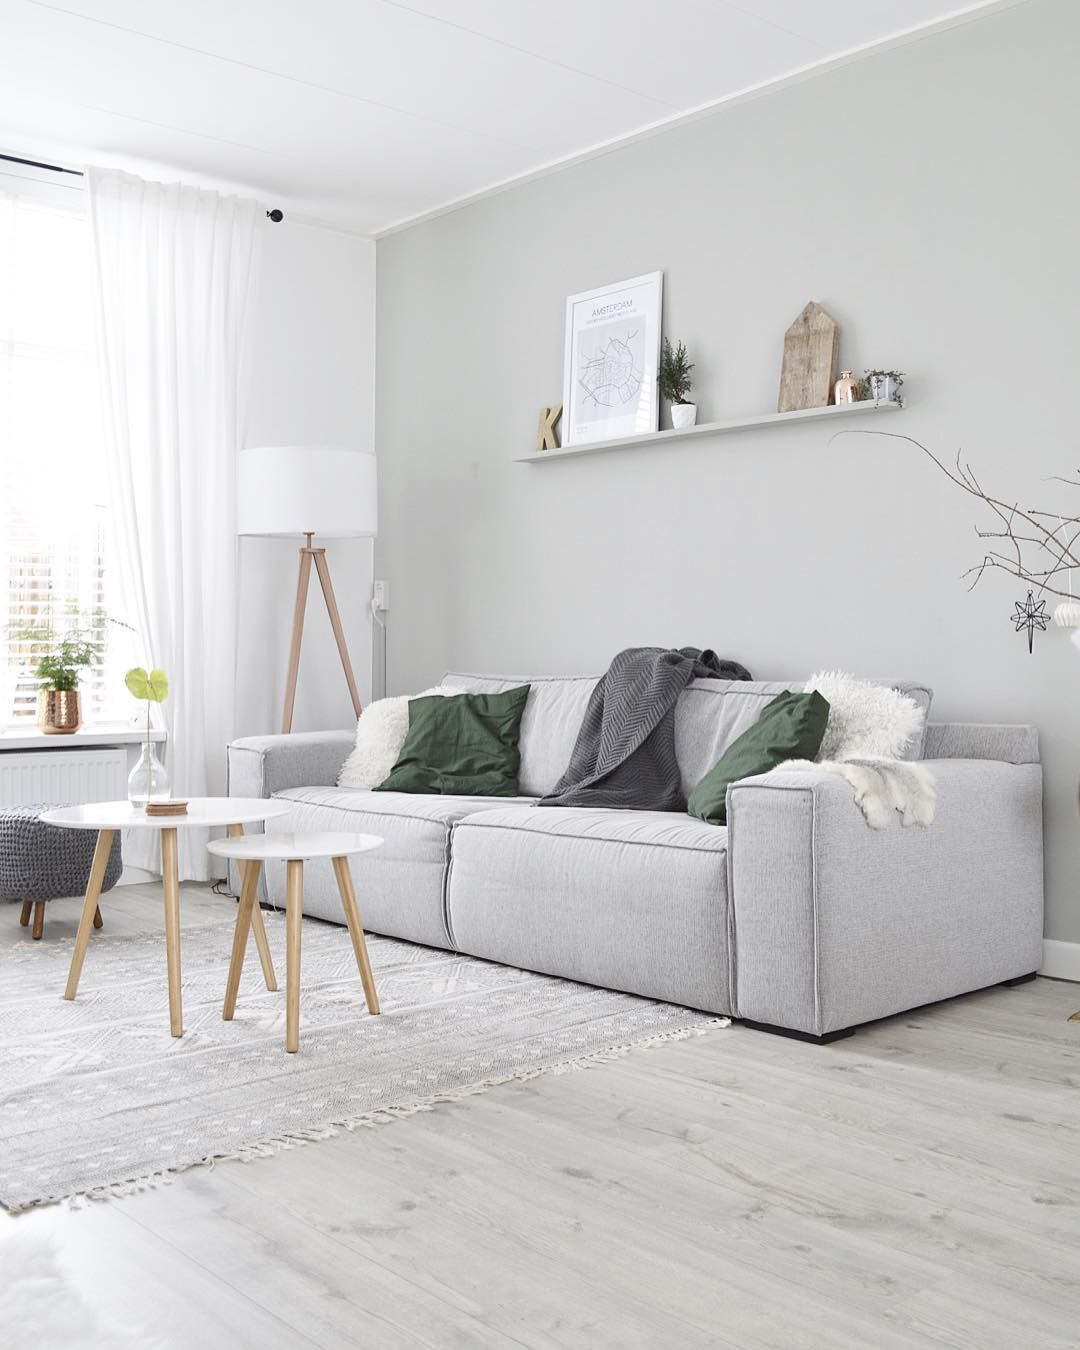 Interior Design Of Living Rooms Draven Made 9 Ideas For That Blank Wall Behind The Sofa